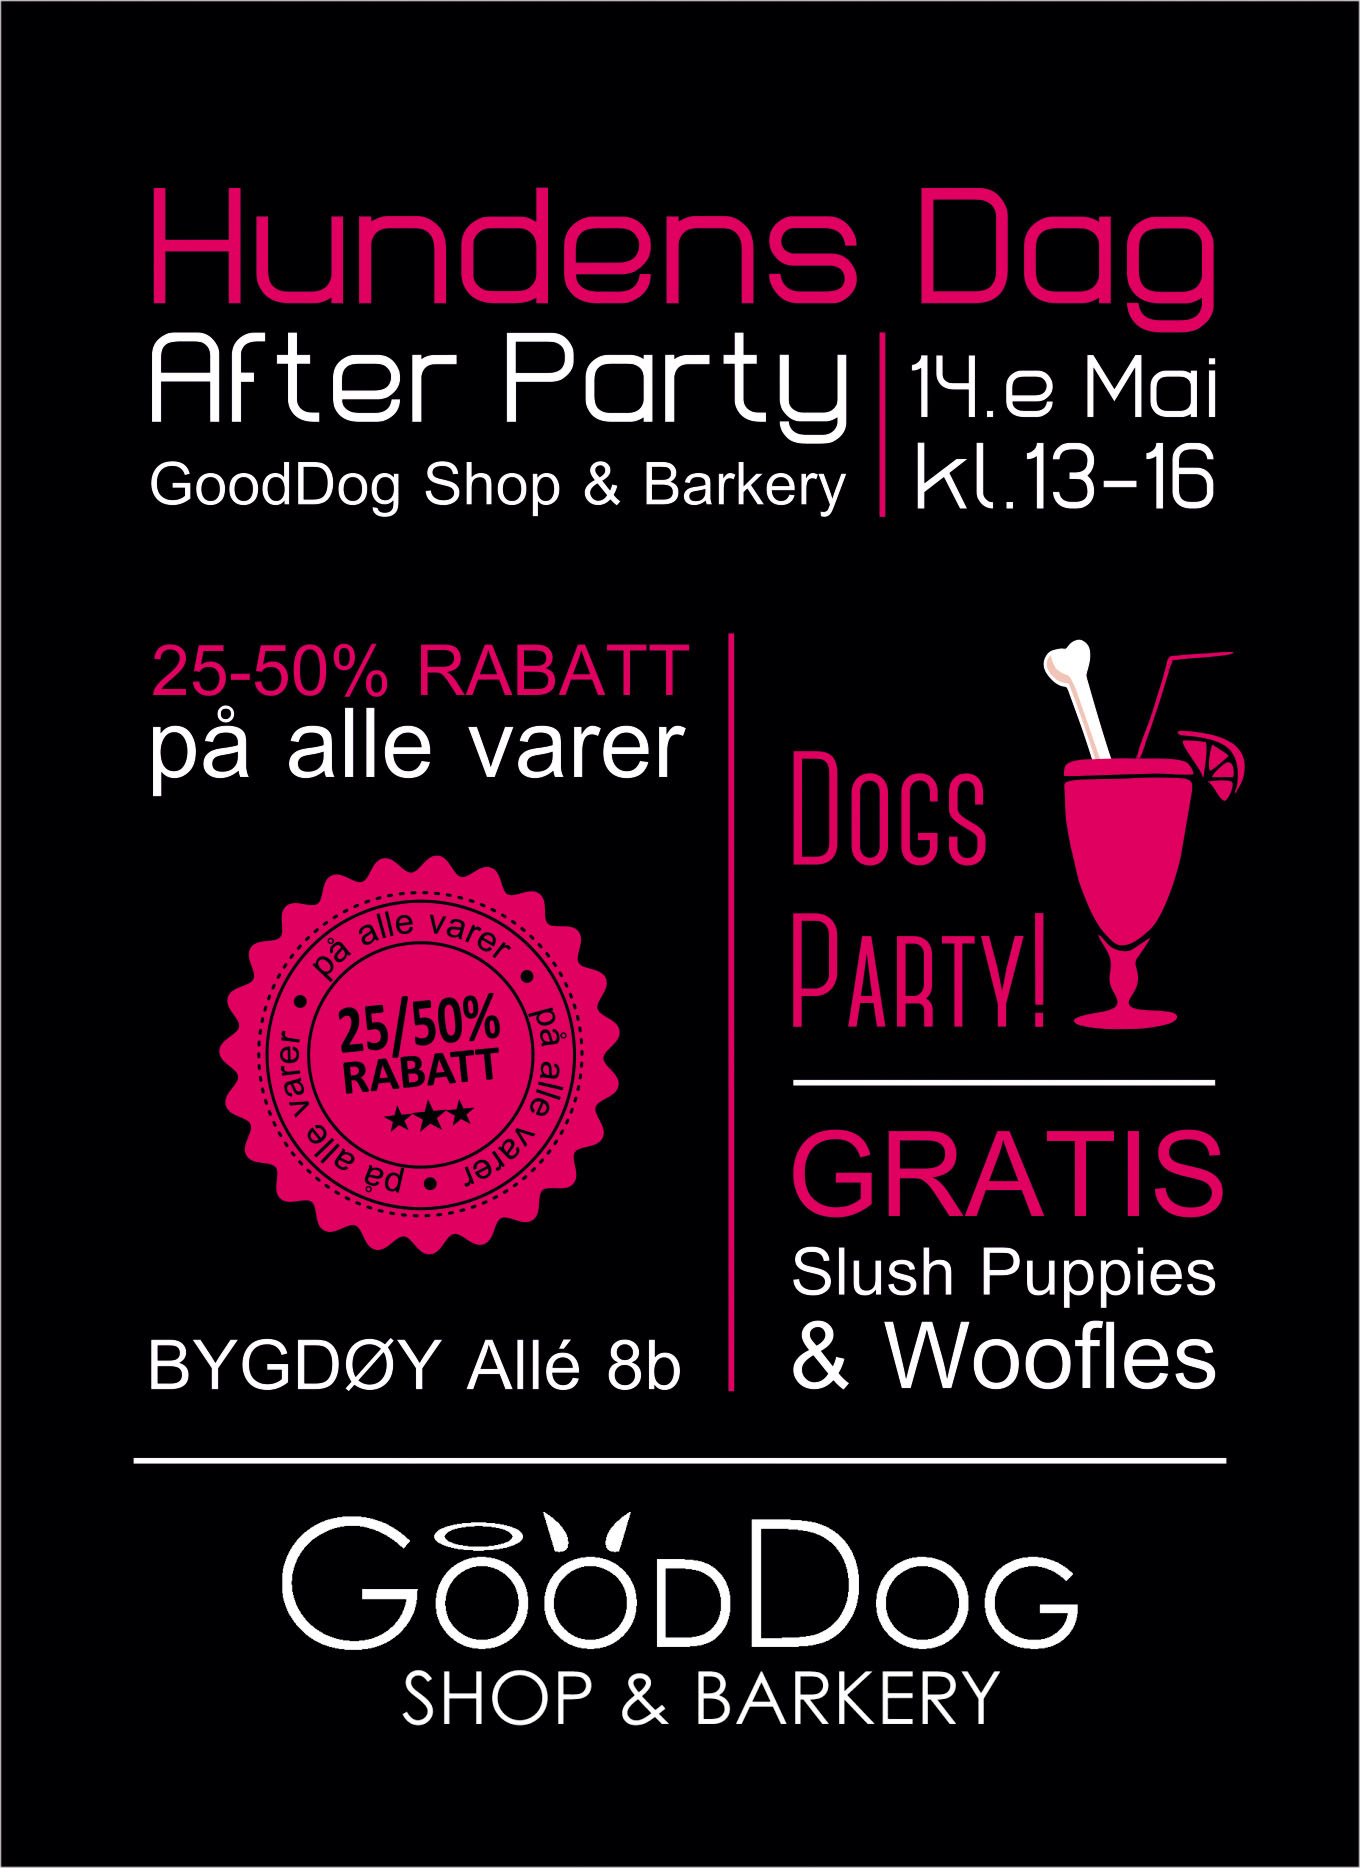 Flyer_GOODDOG_2a